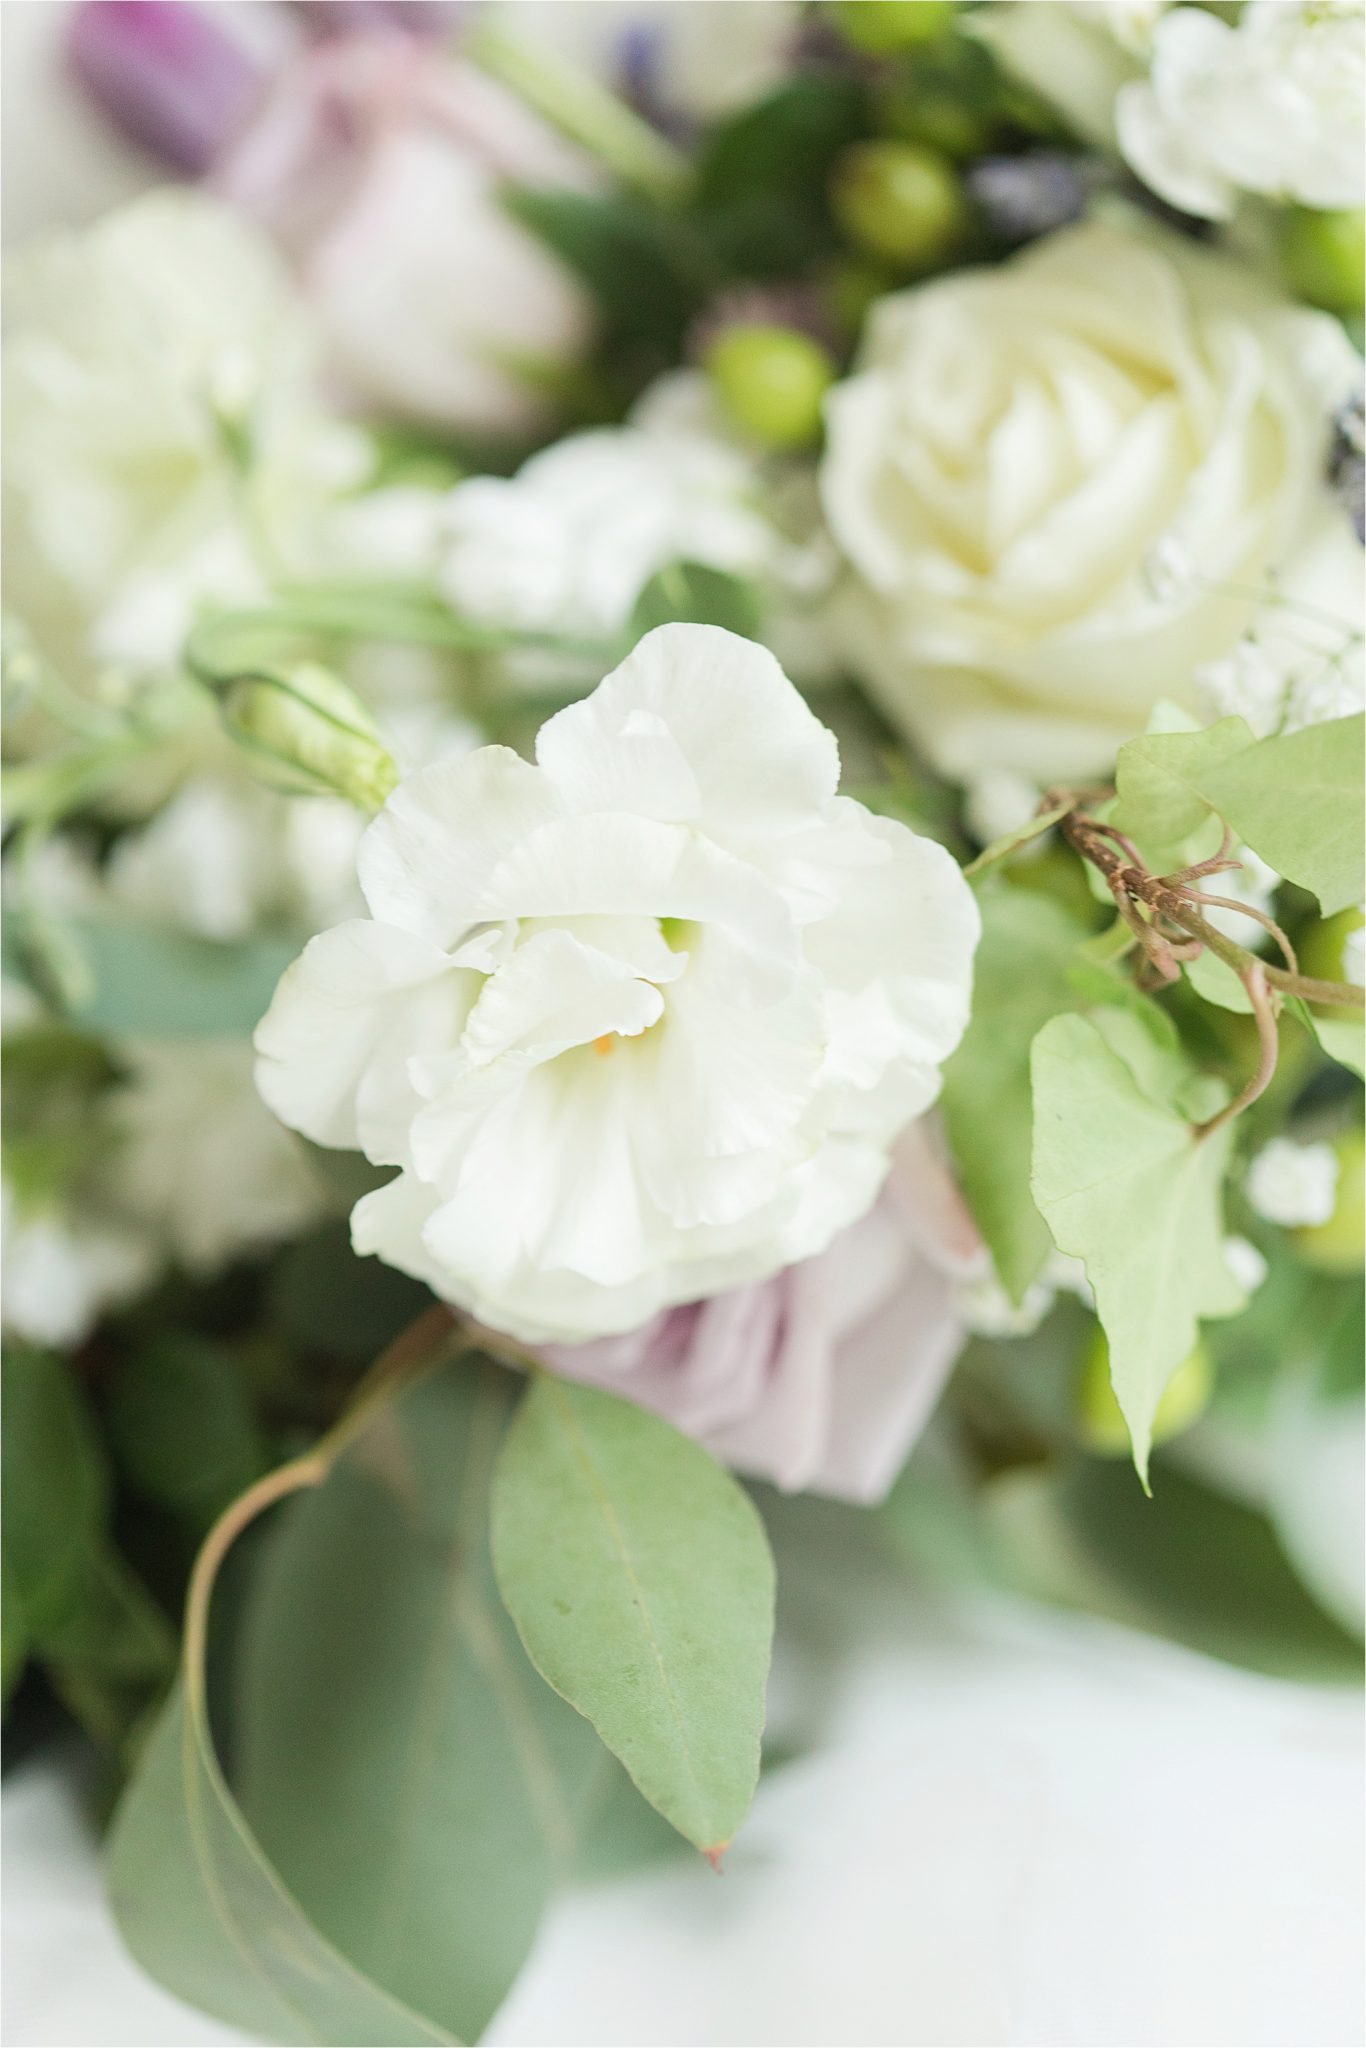 lavender-white roses-flowers-greenery-white wedding bouquet